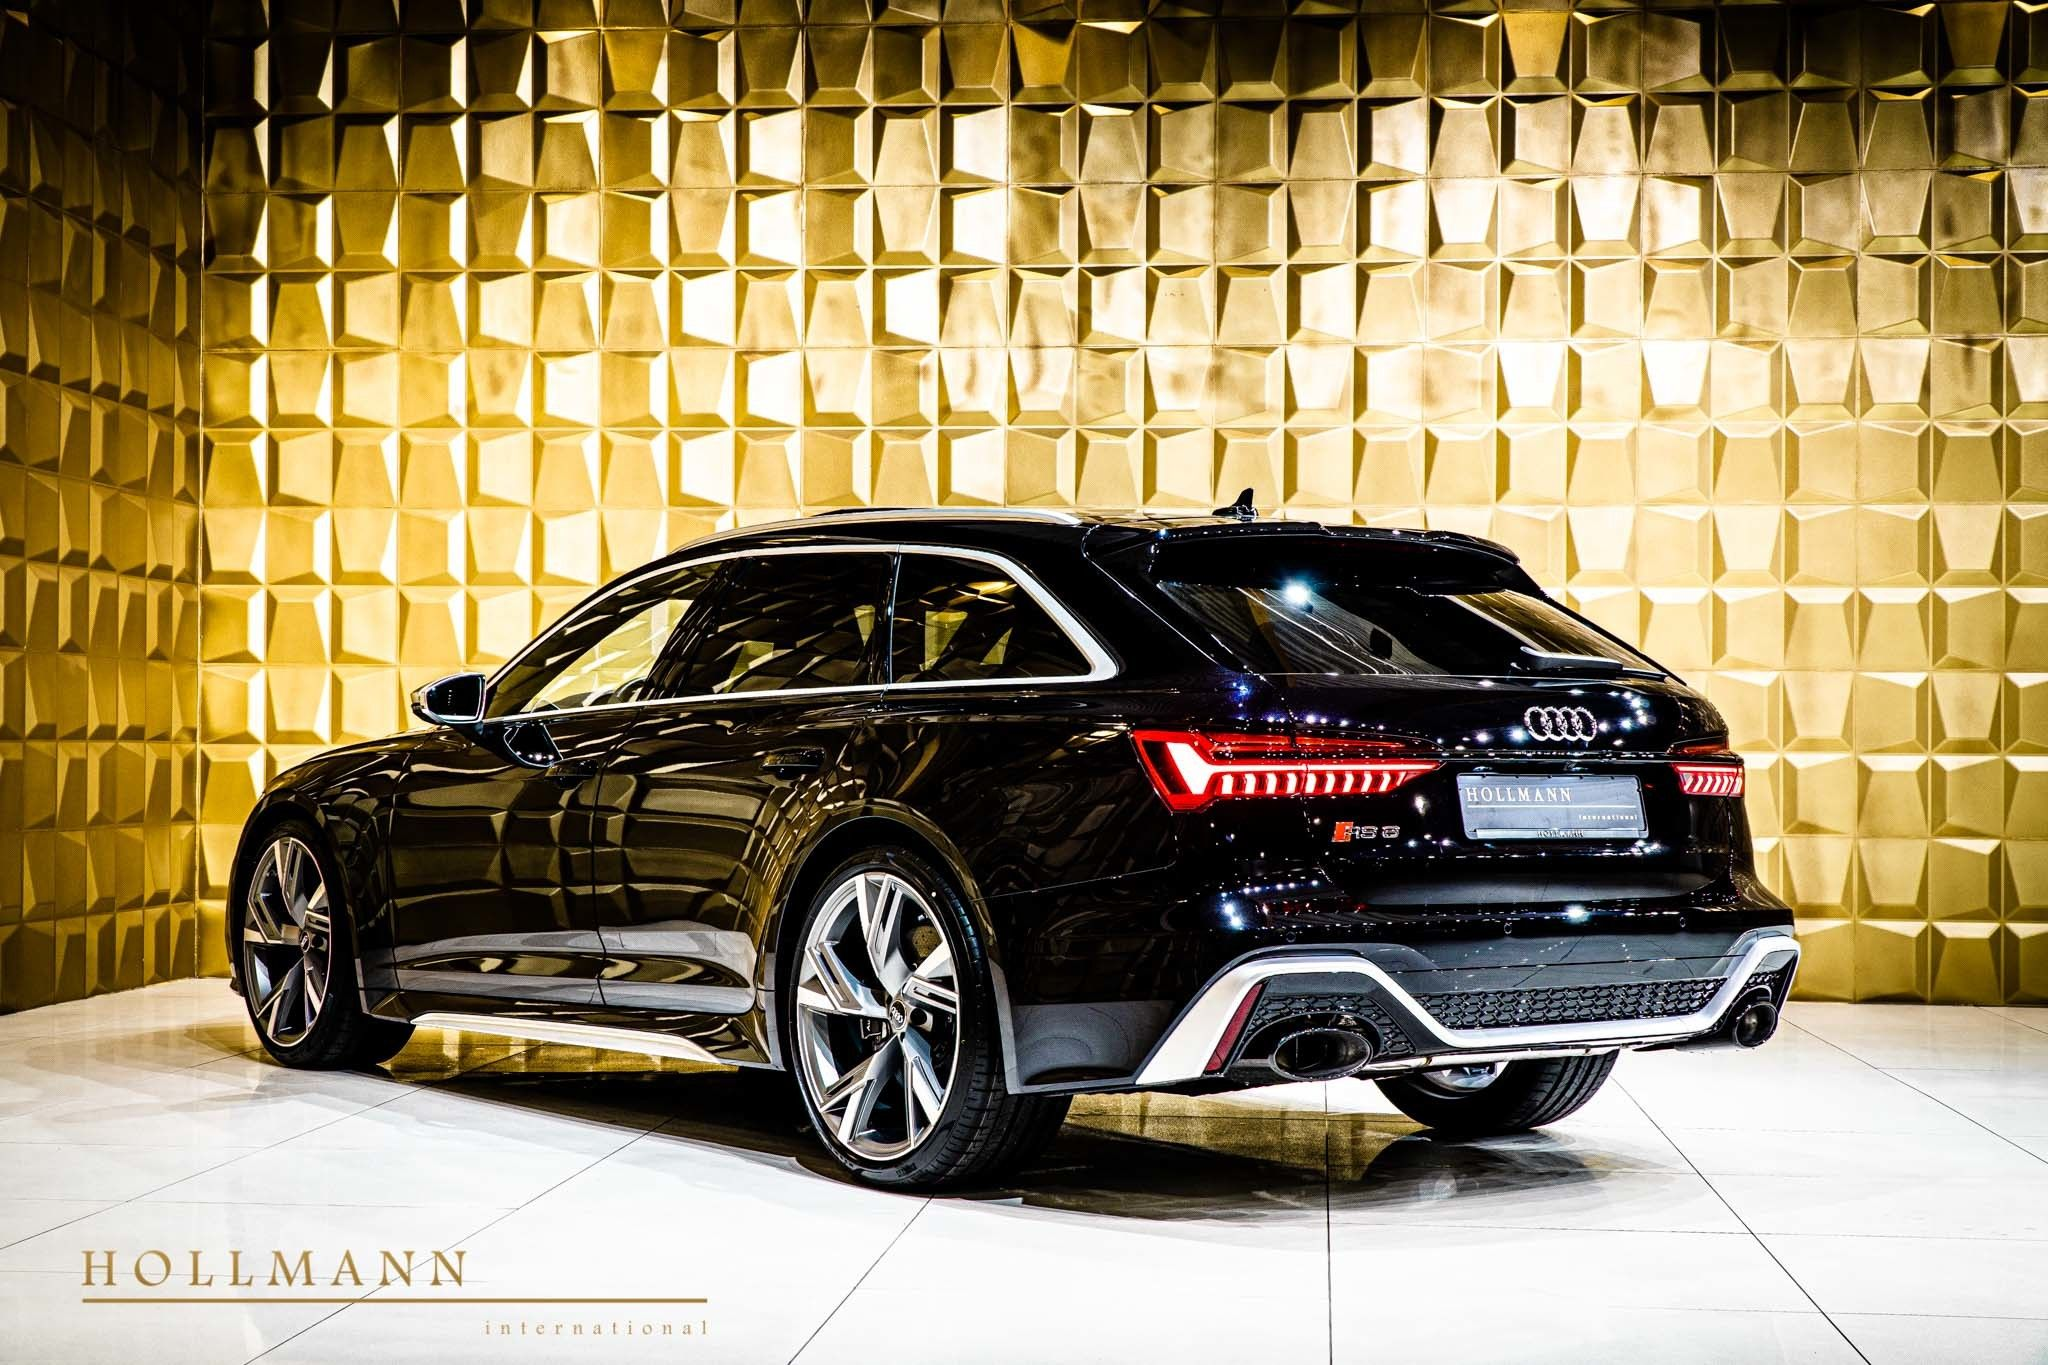 For Sale Audi Rs6 Avant Hollmann International Germany For Sale On Luxurypulse In 2020 Audi Rs6 Audi How To Clean Headlights